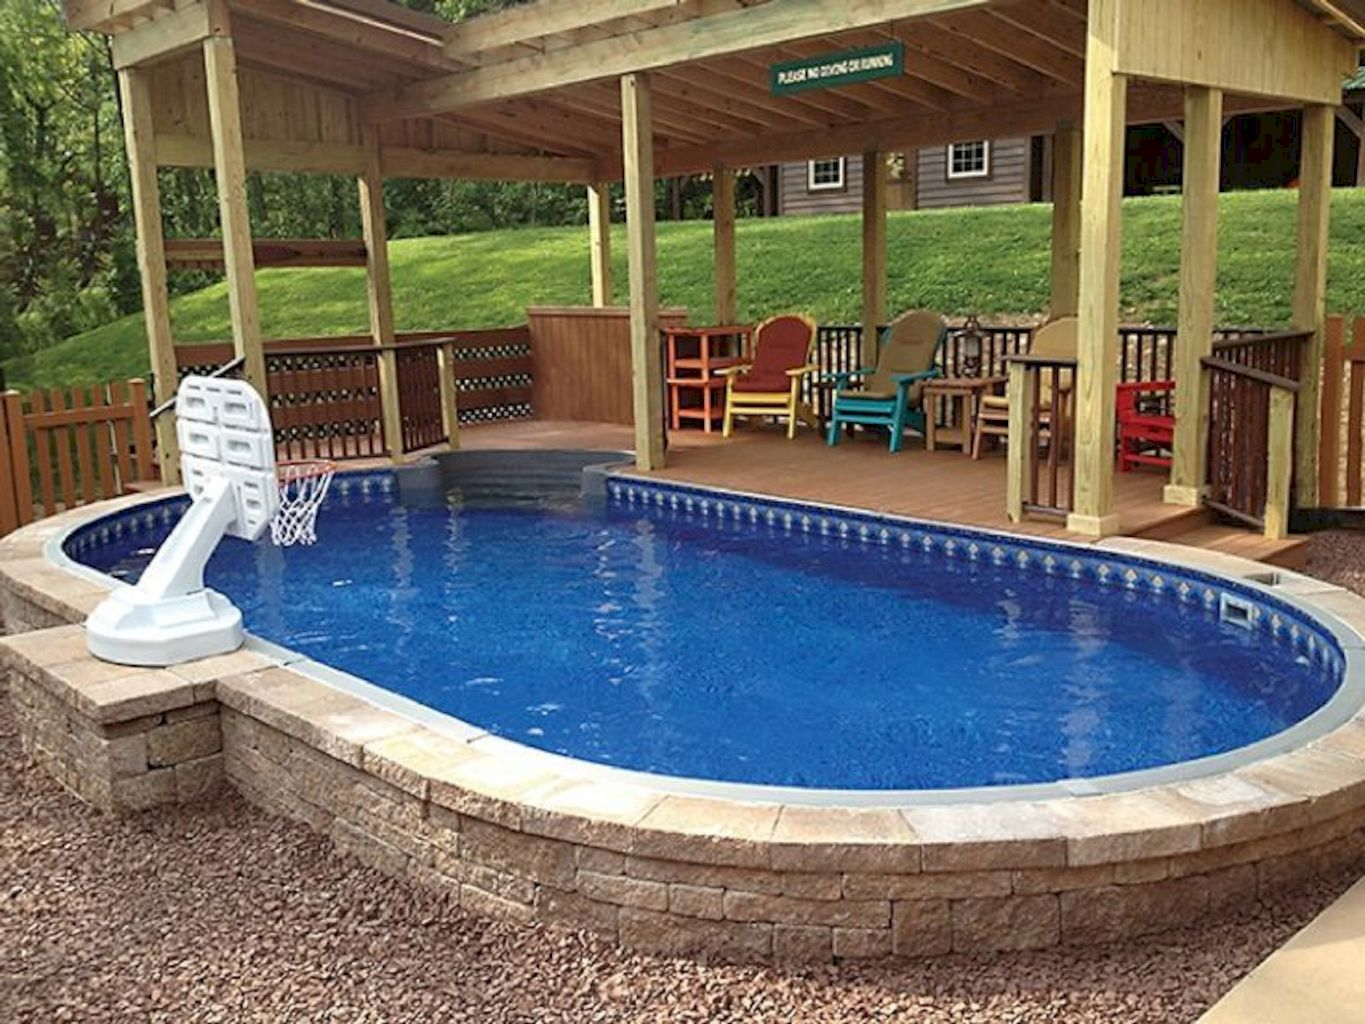 Simple pool designs built above ground designed with cheap materials for simple outdoor relieves Image 7